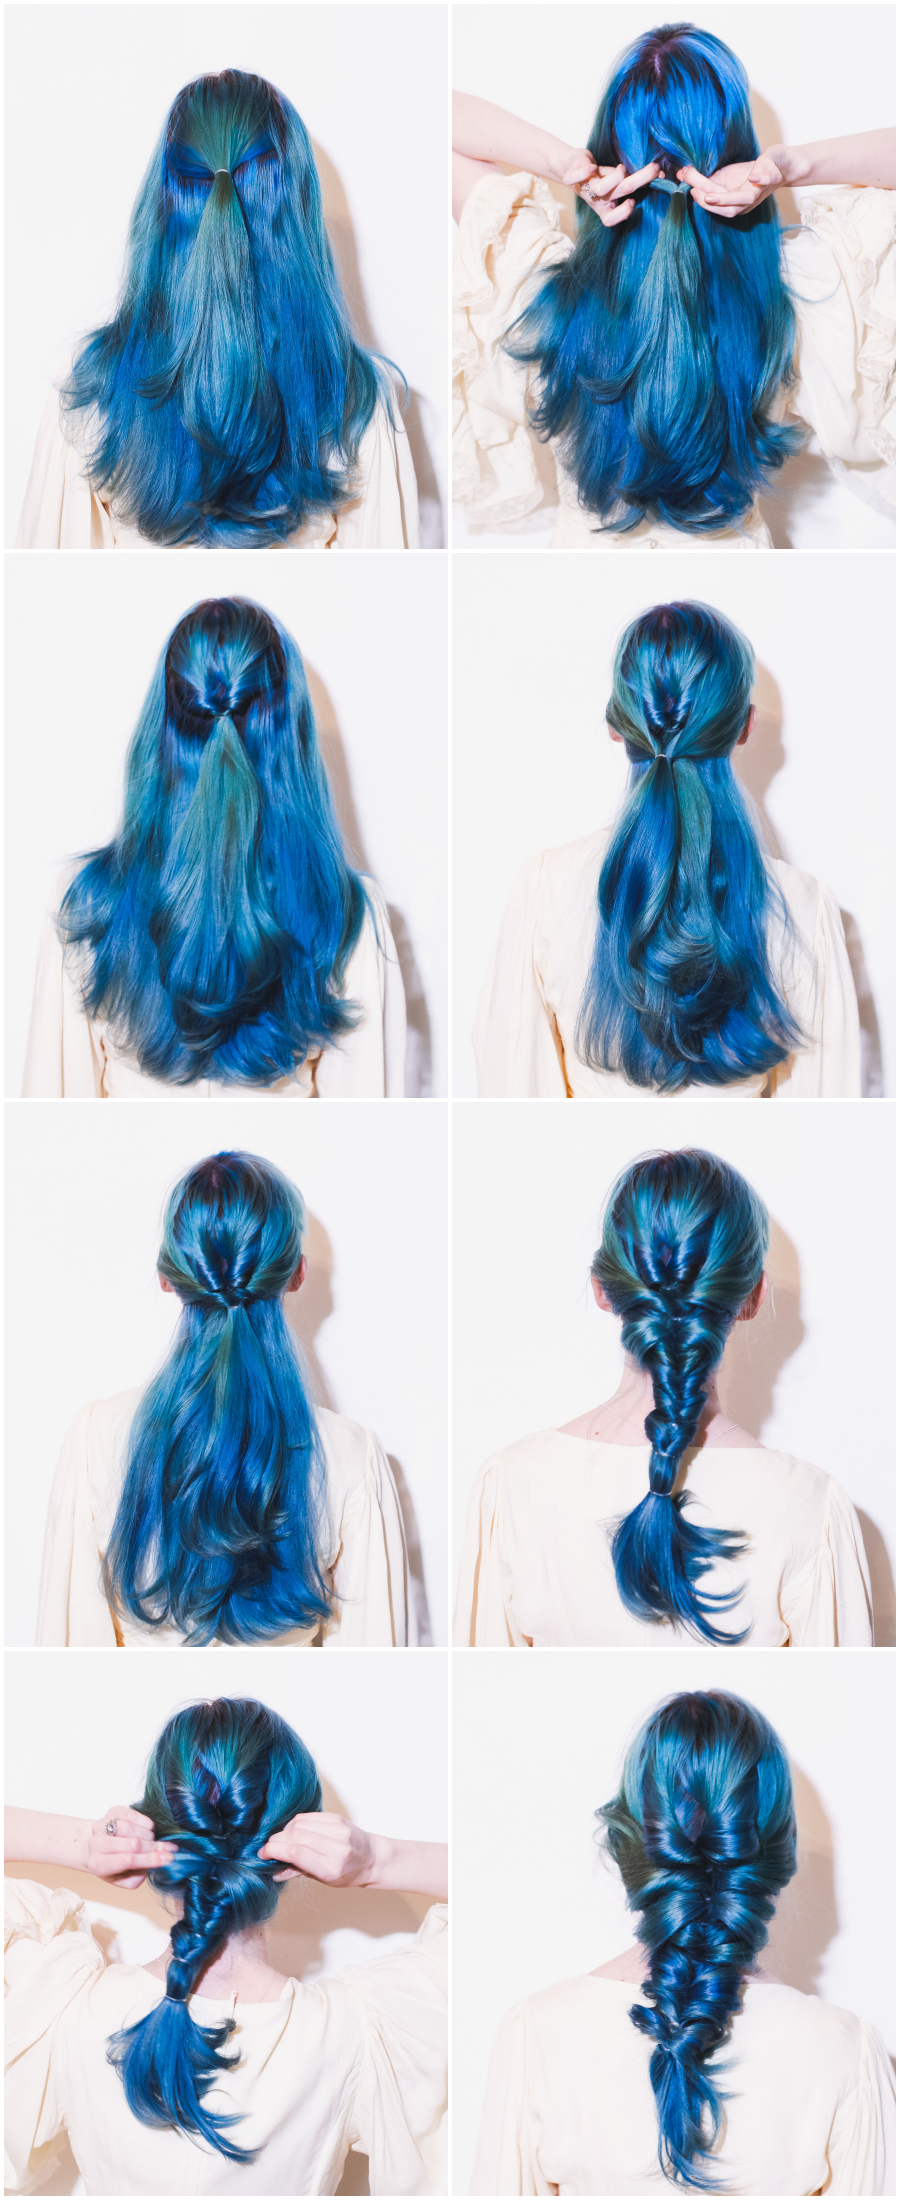 Mermaid Hairstyles A Clothes Horse A Messy Mermaid Braid  Hairmake Up  Pinterest